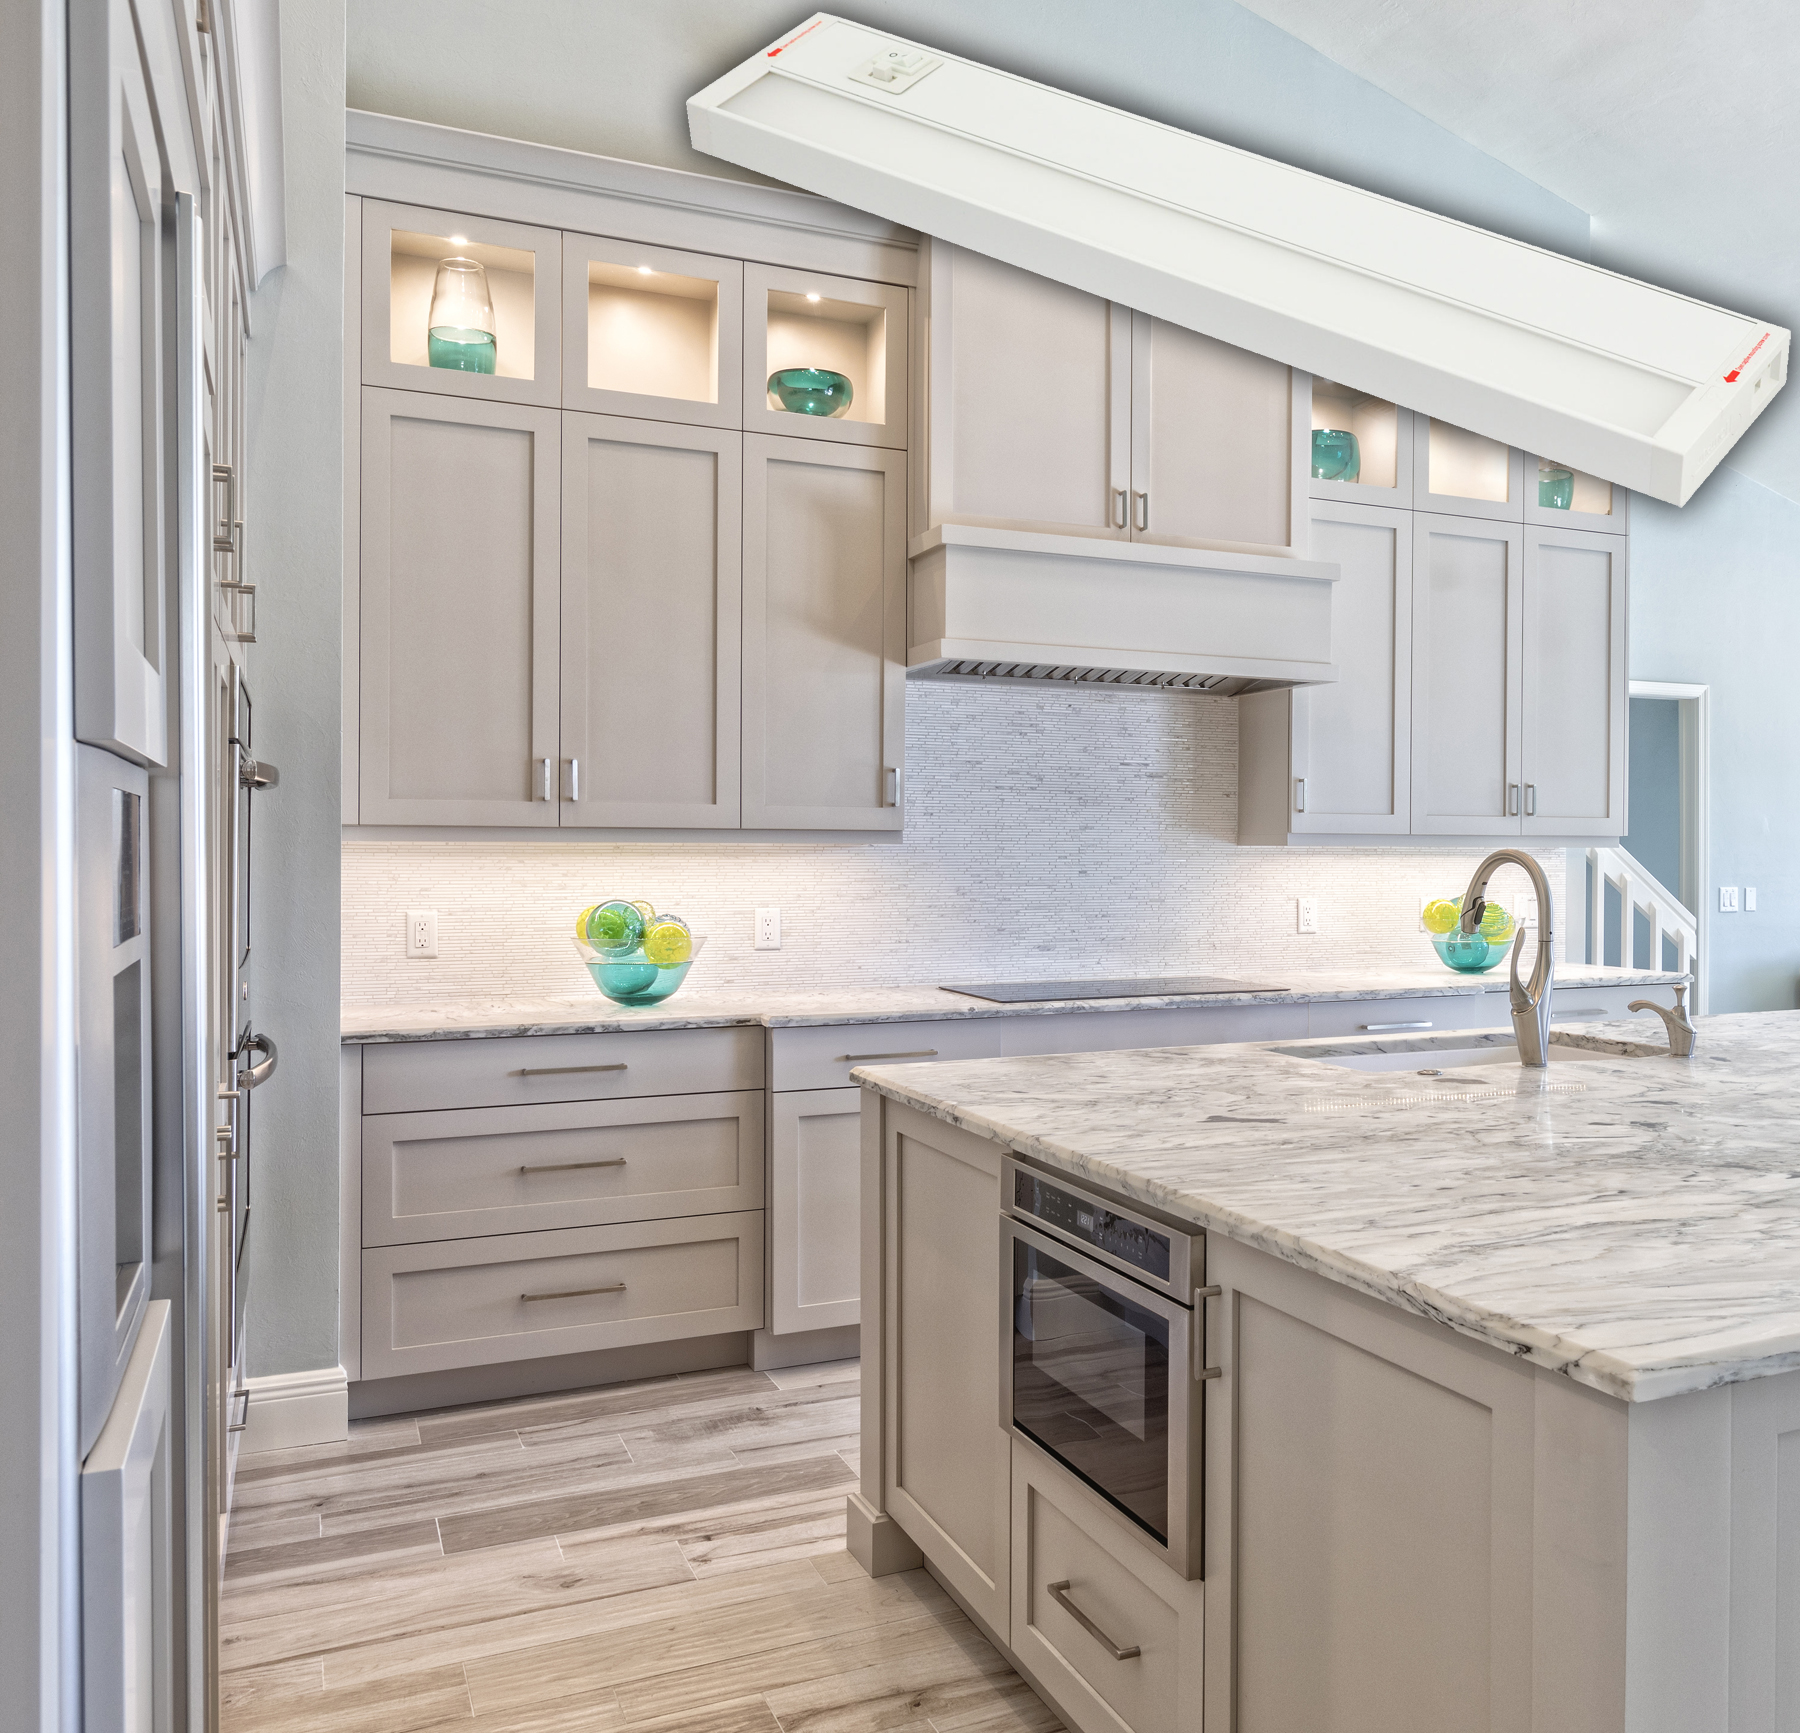 How To Choose Under Cabinet Lighting Kitchen: Select Color Temperature For Under-cabinet Fixture